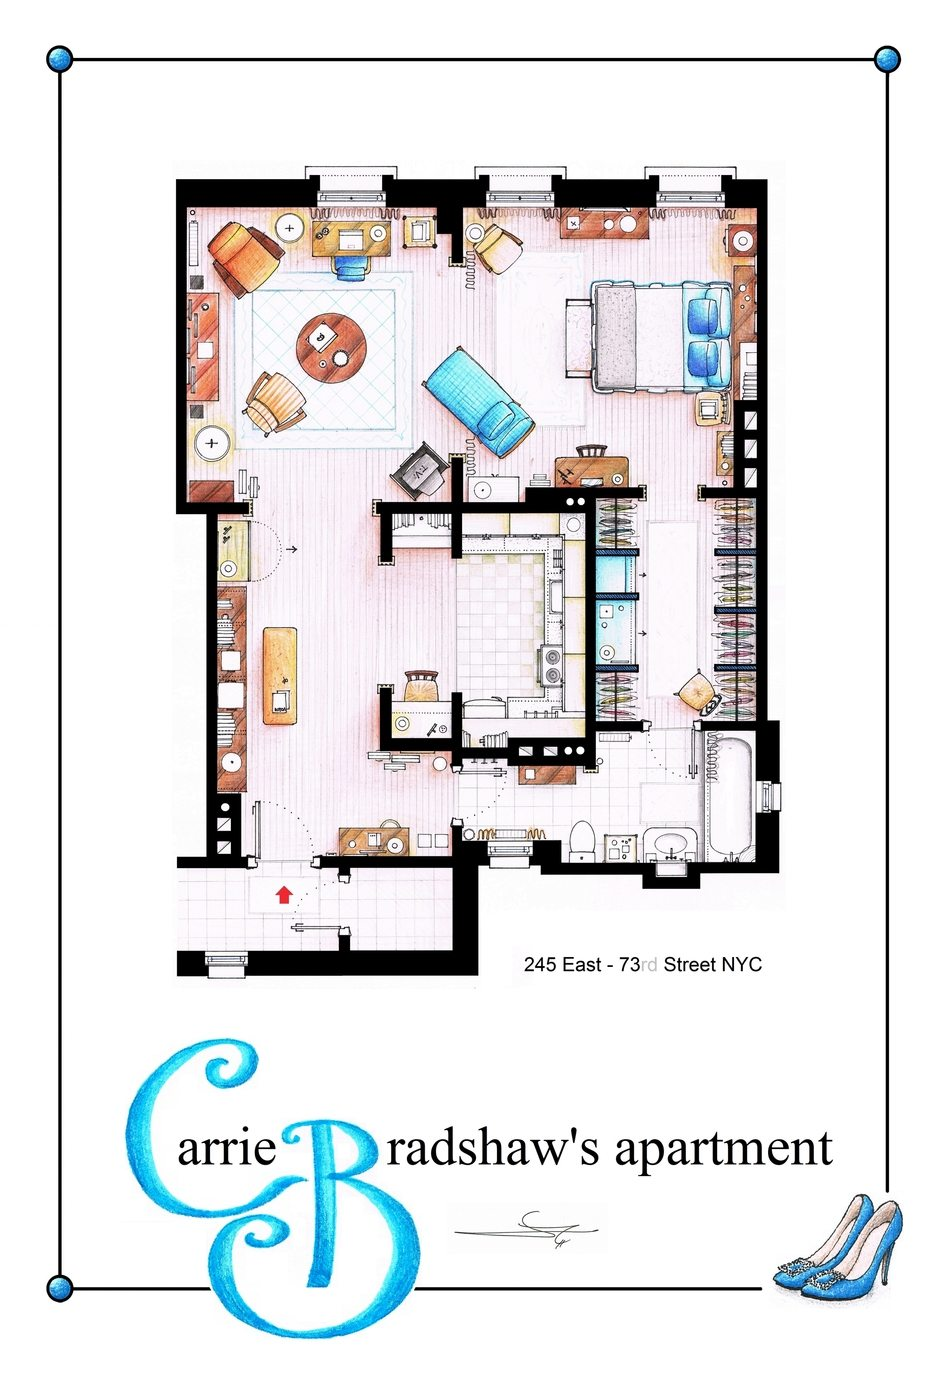 Carrie Bradshaw's apartment in Sex and the City